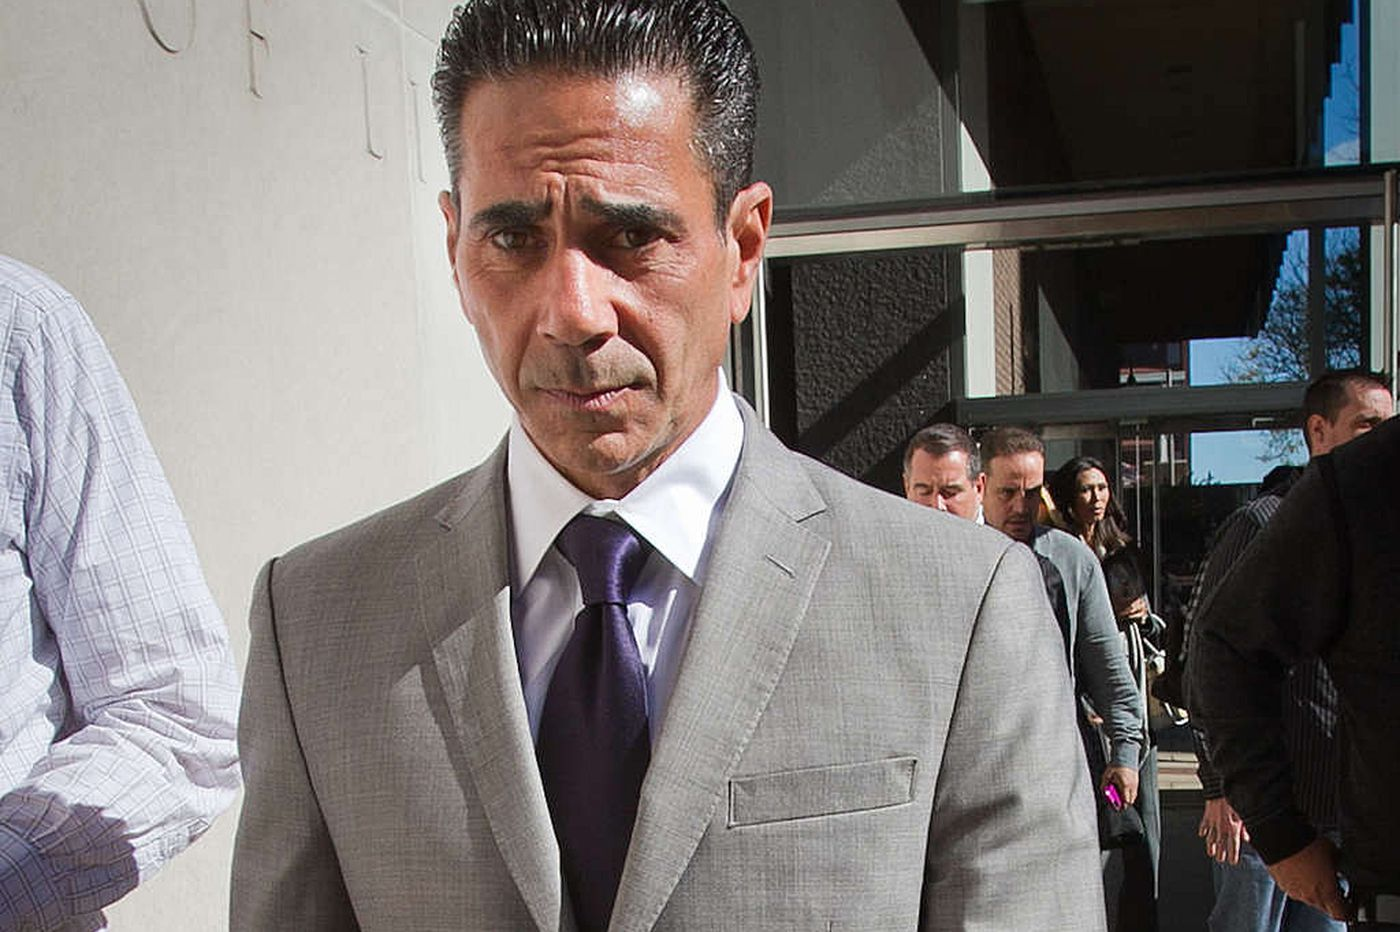 Merlino's back: 'He's out. He's a free man'